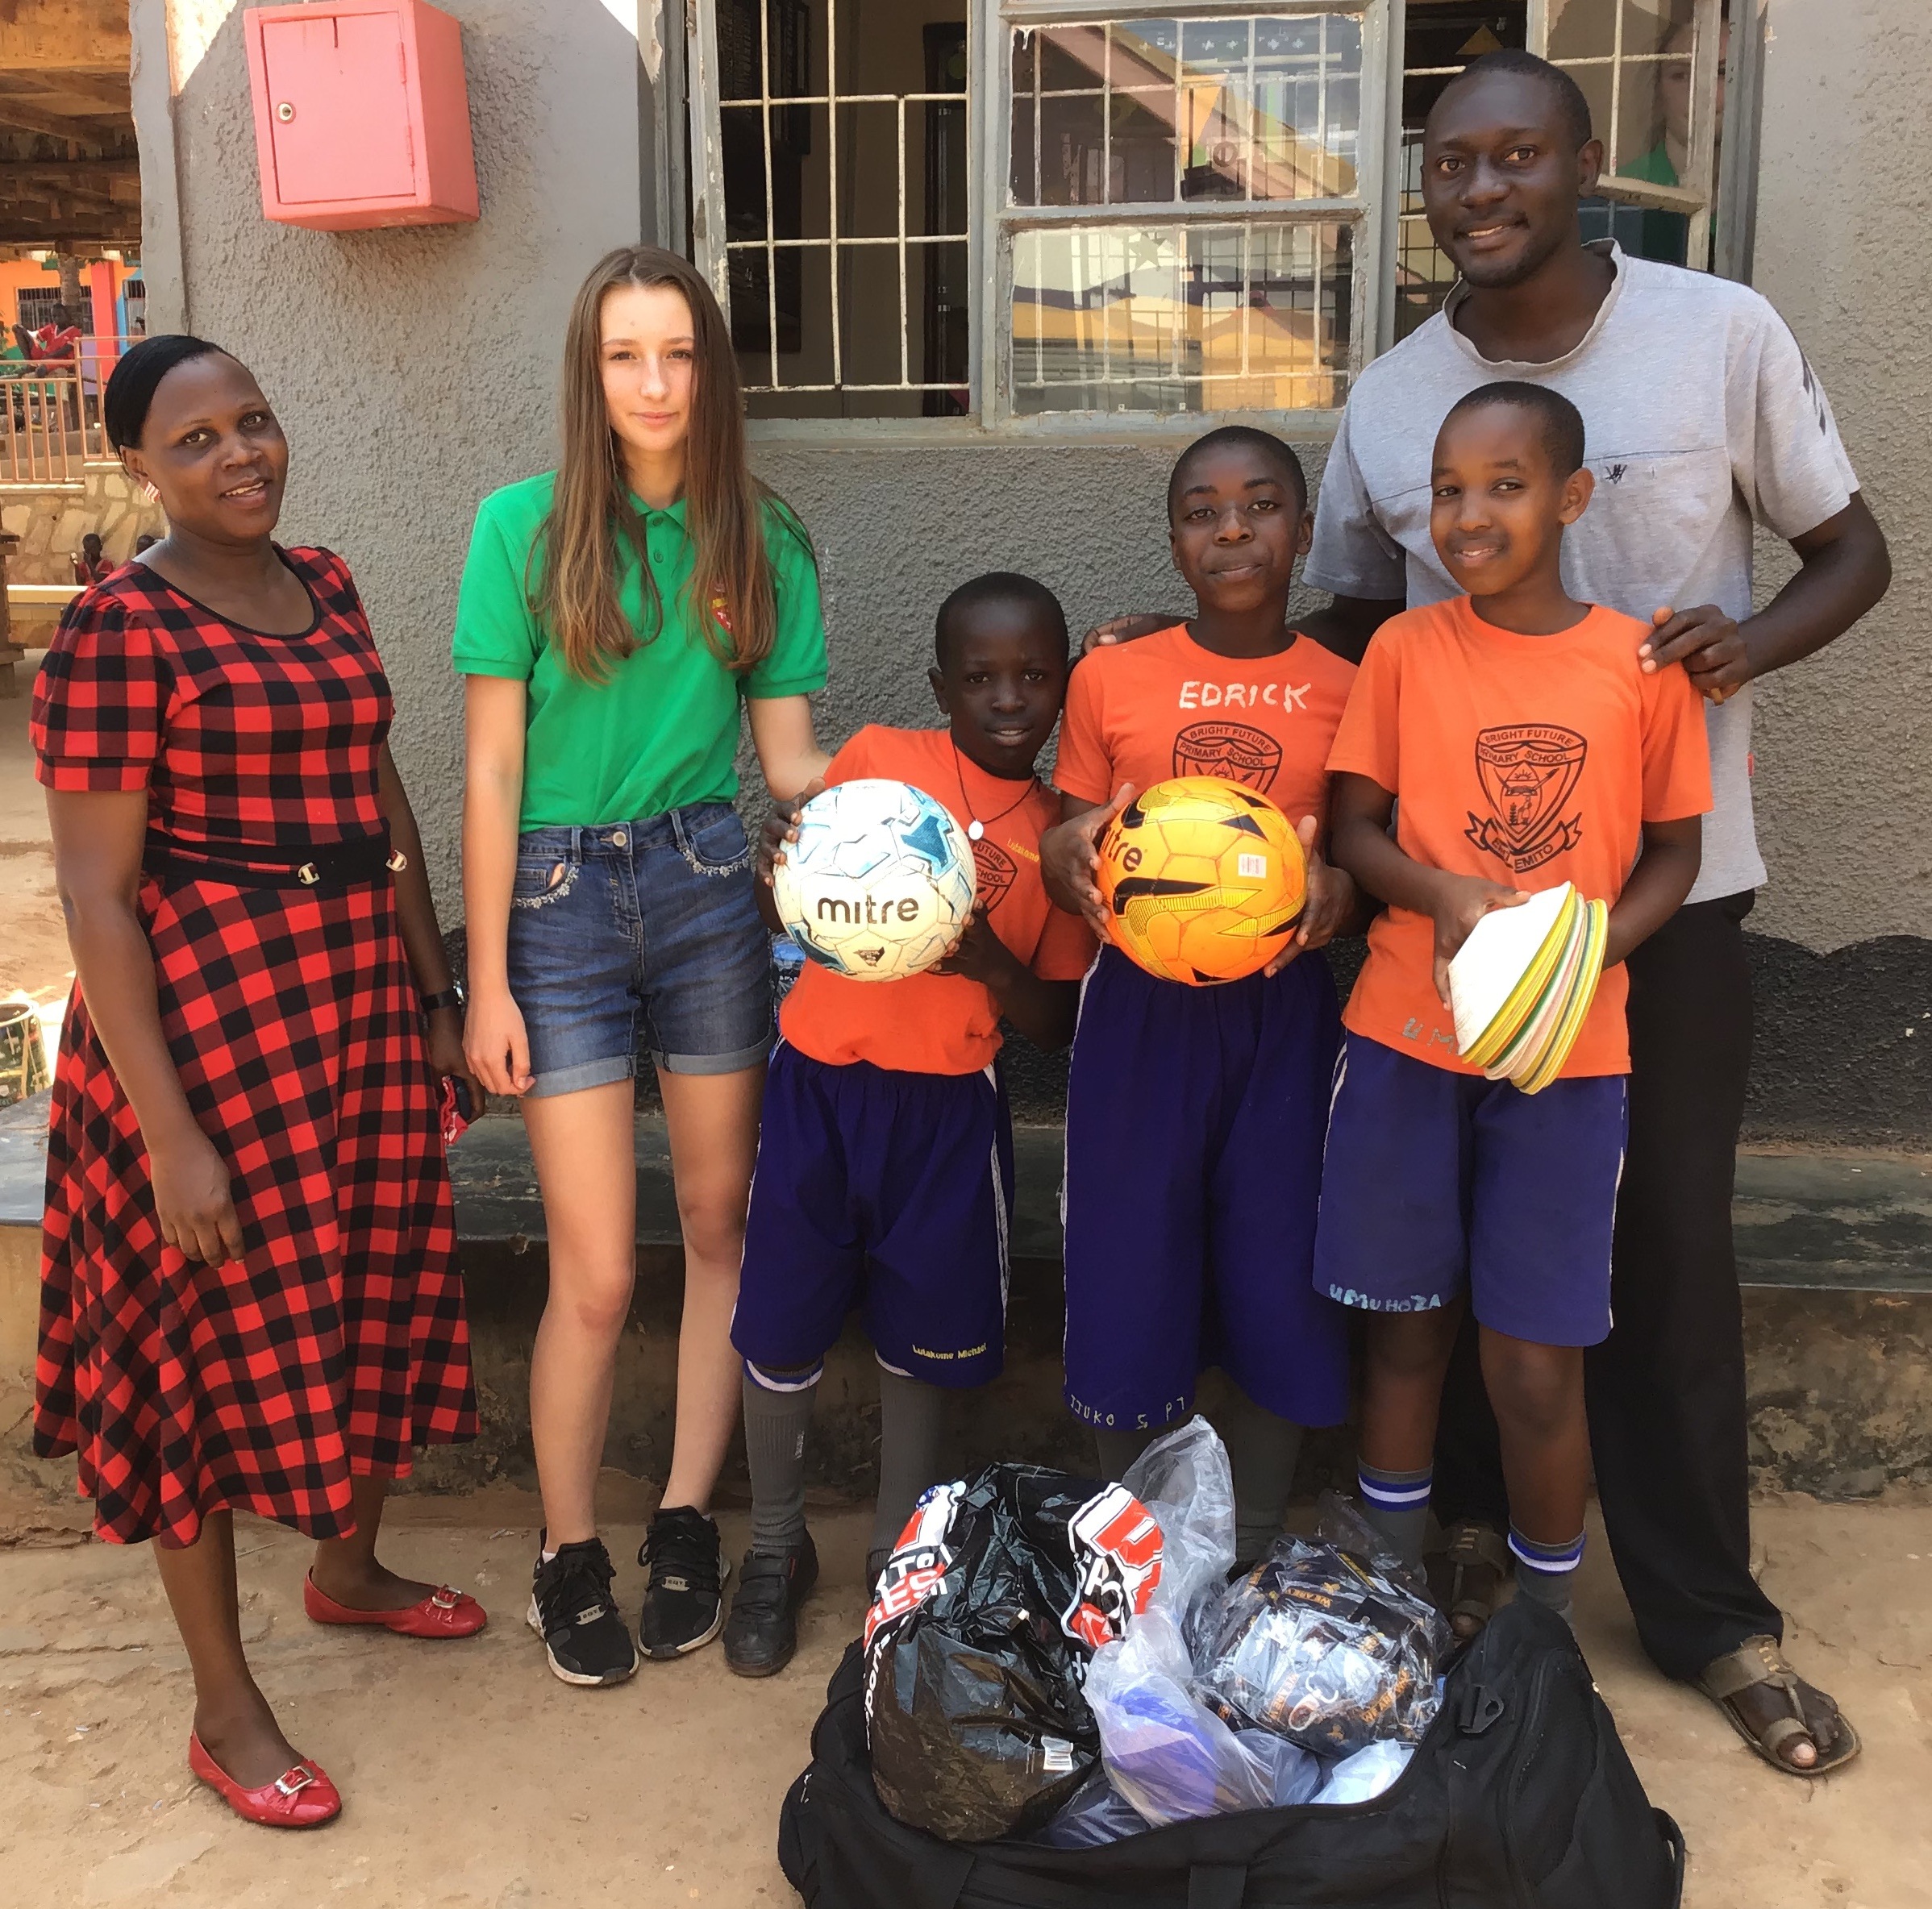 UGANDA 2018 BLOG: Humbled by gratitude - Caludon Castle School